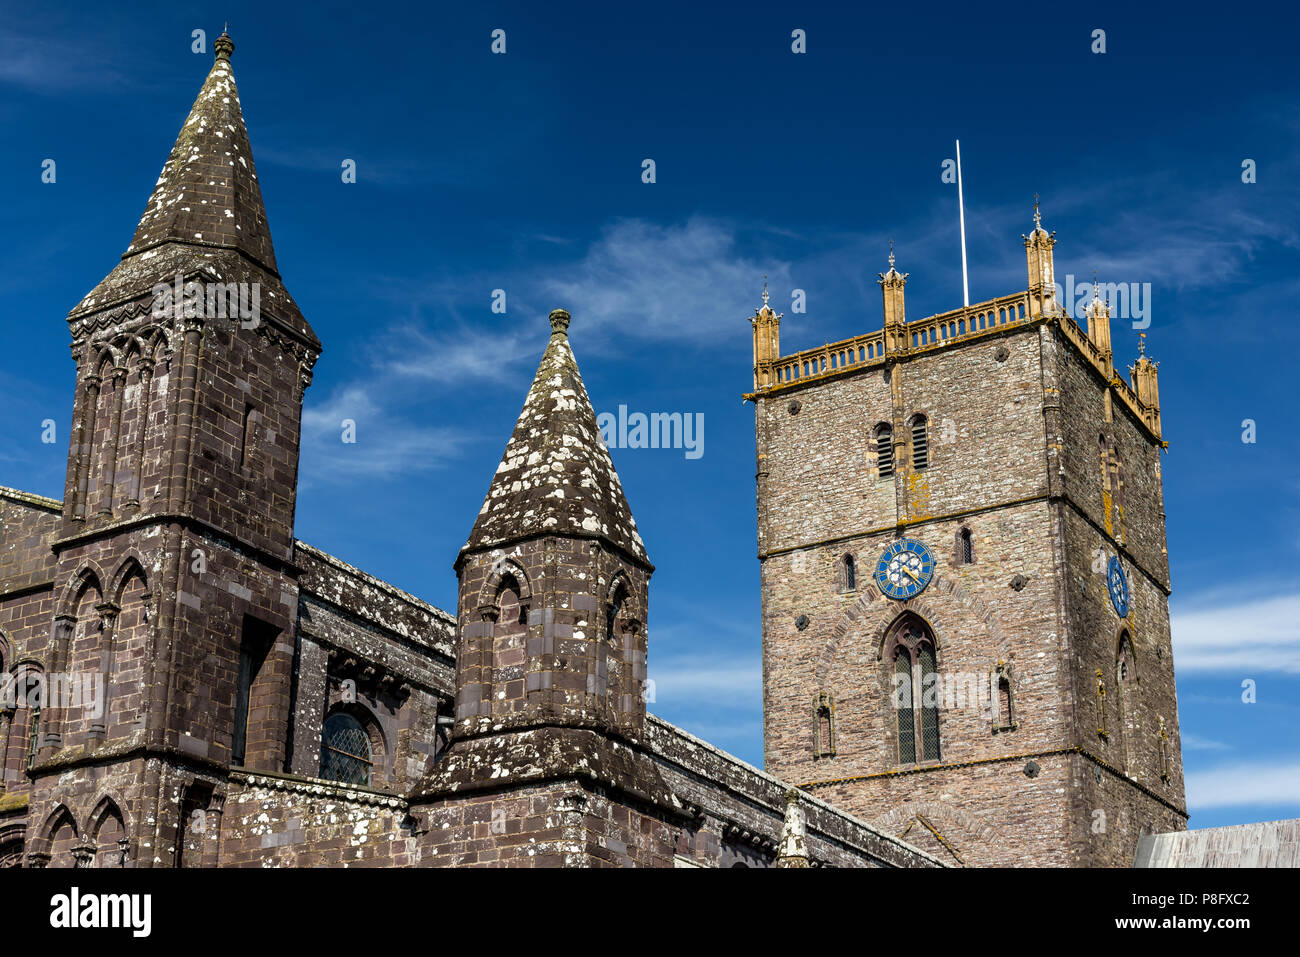 St. David's Cathedral - Stock Image